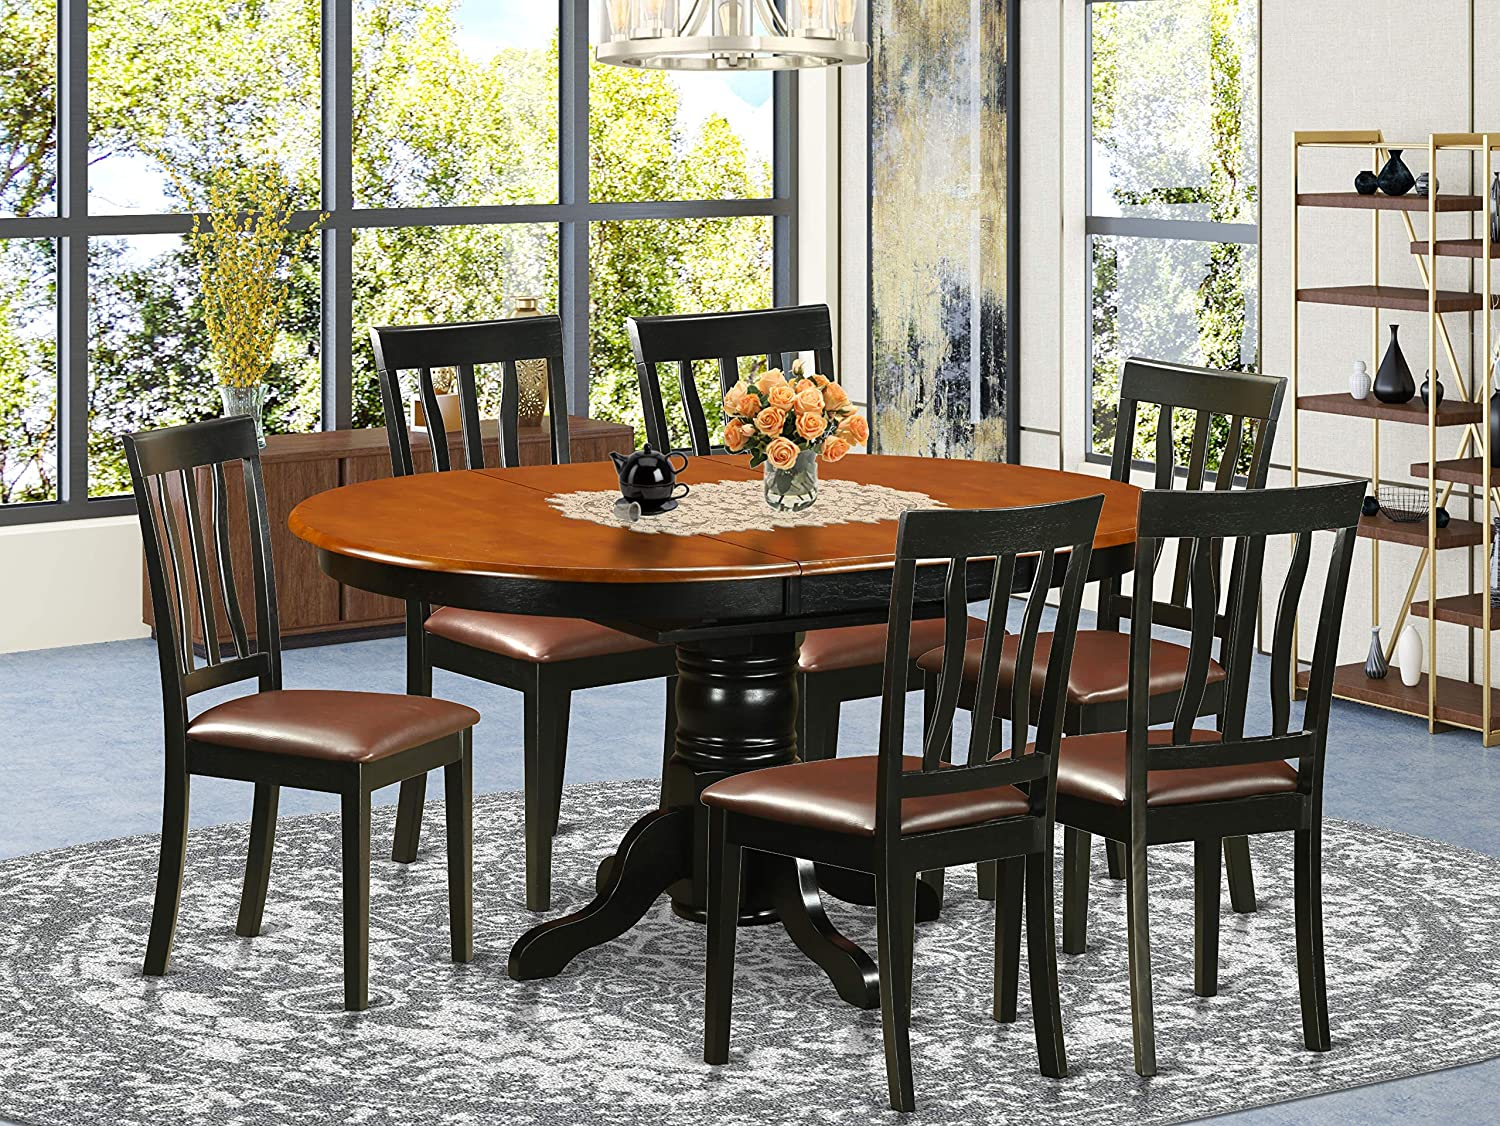 Amazon Com East West Furniture 7 Pieces Nook Kitchen Table Set Pu Leather Wood Chairs Black And Cherry Finish Hardwood Butterfly Leaf Pedestal Modern Dining Table And Frame Table Chair Sets